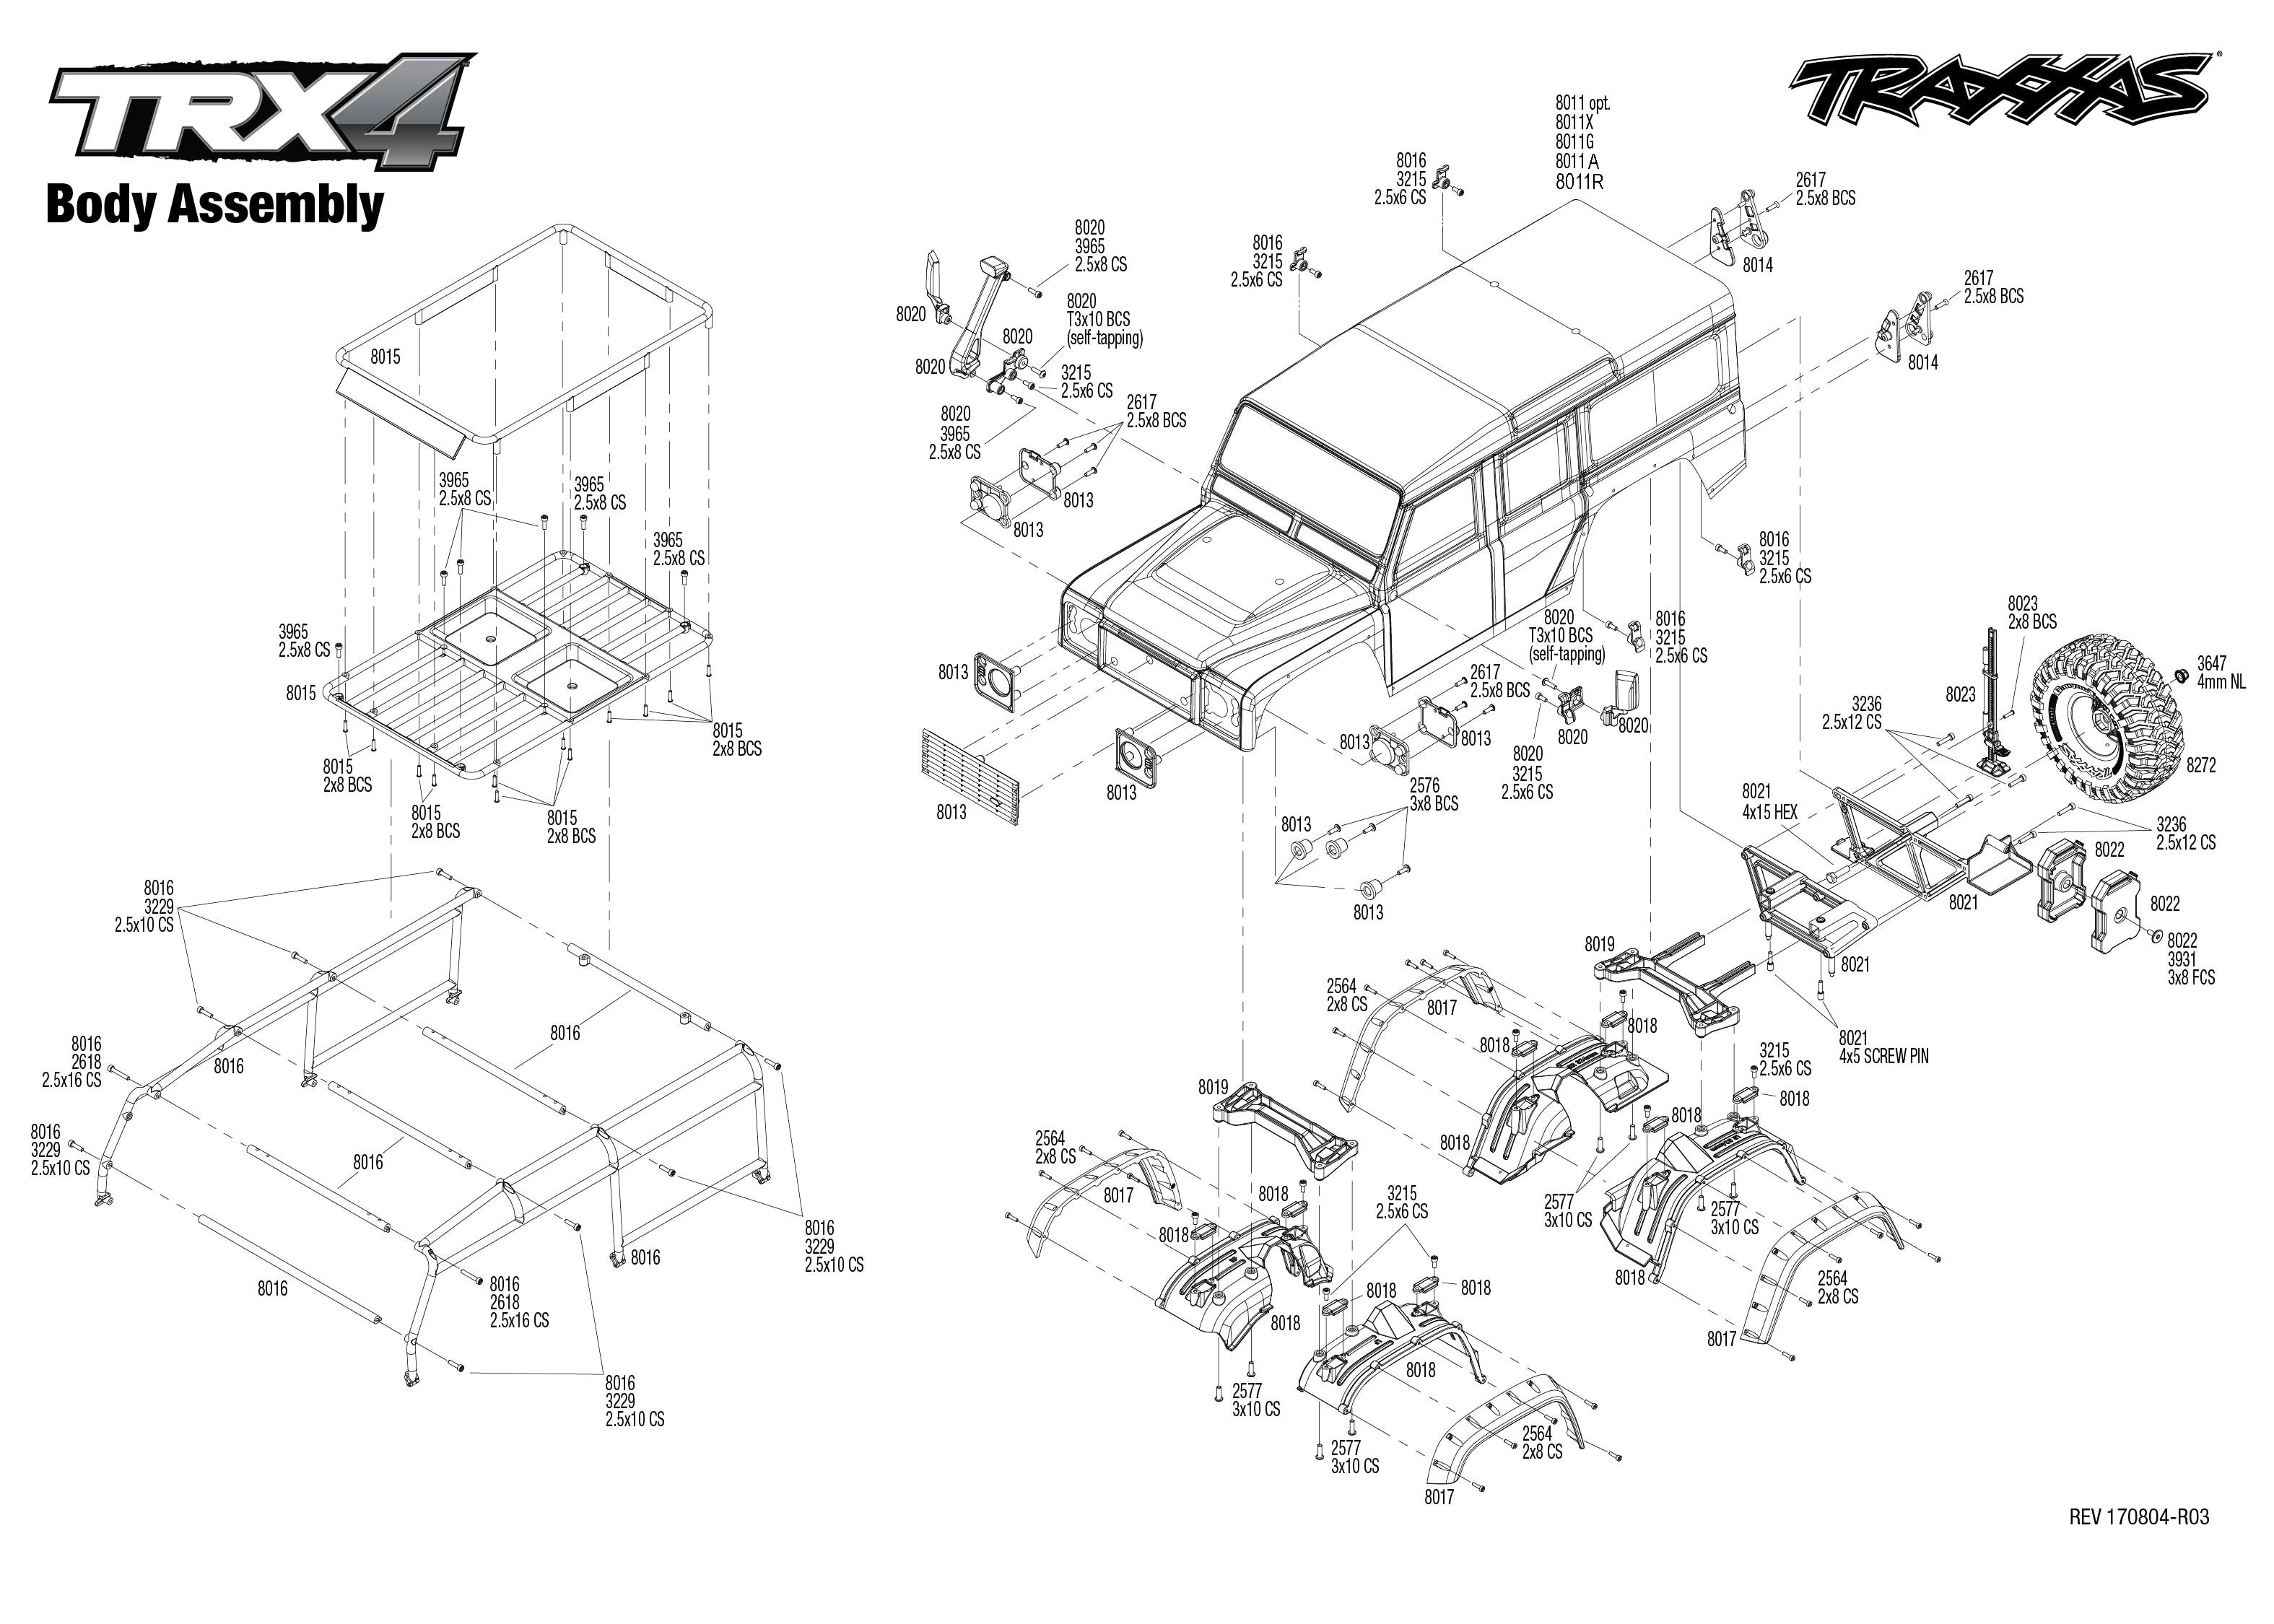 Traxxas repair manual